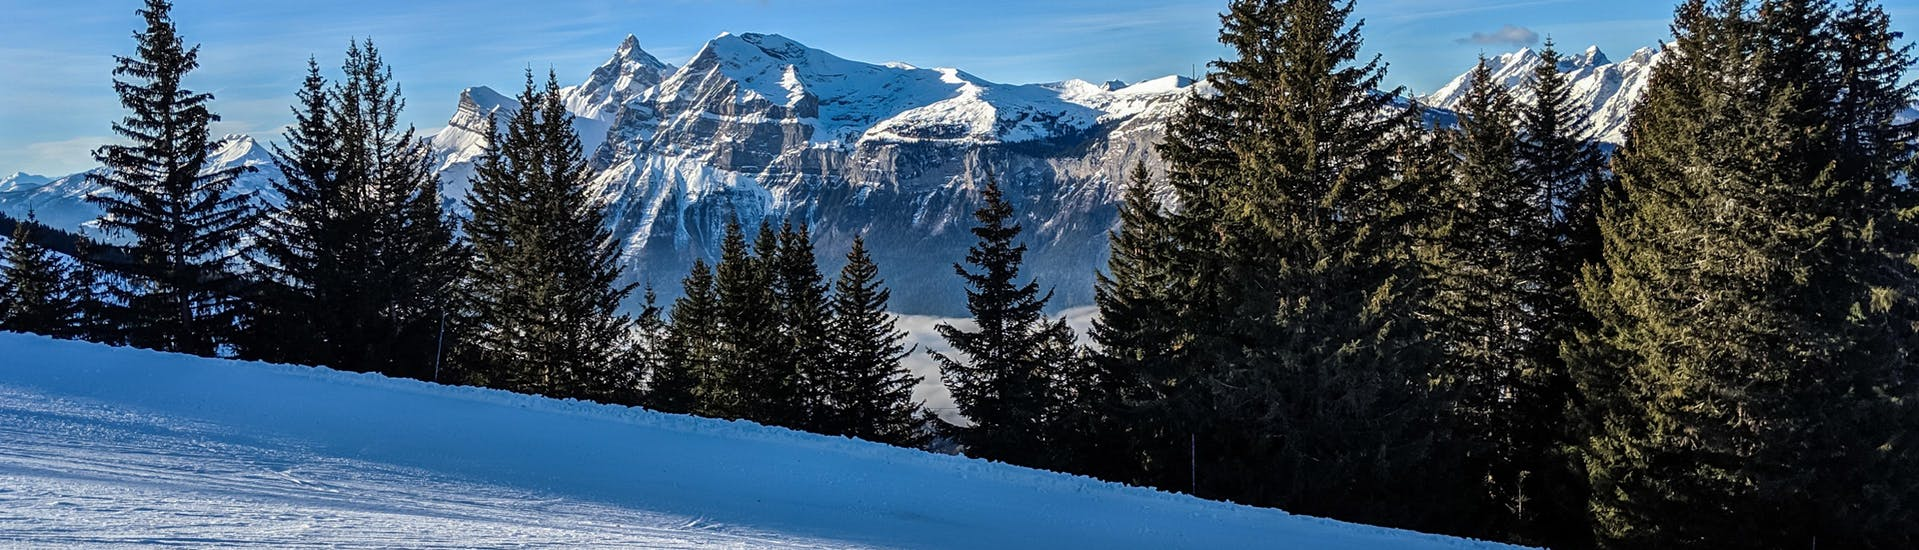 An image of a freshly prepared ski slope in the French ski resort of Les Carroz, a popular place to go skiing in the Grand Massif where visitors can book ski lessons with one of the local ski schools.